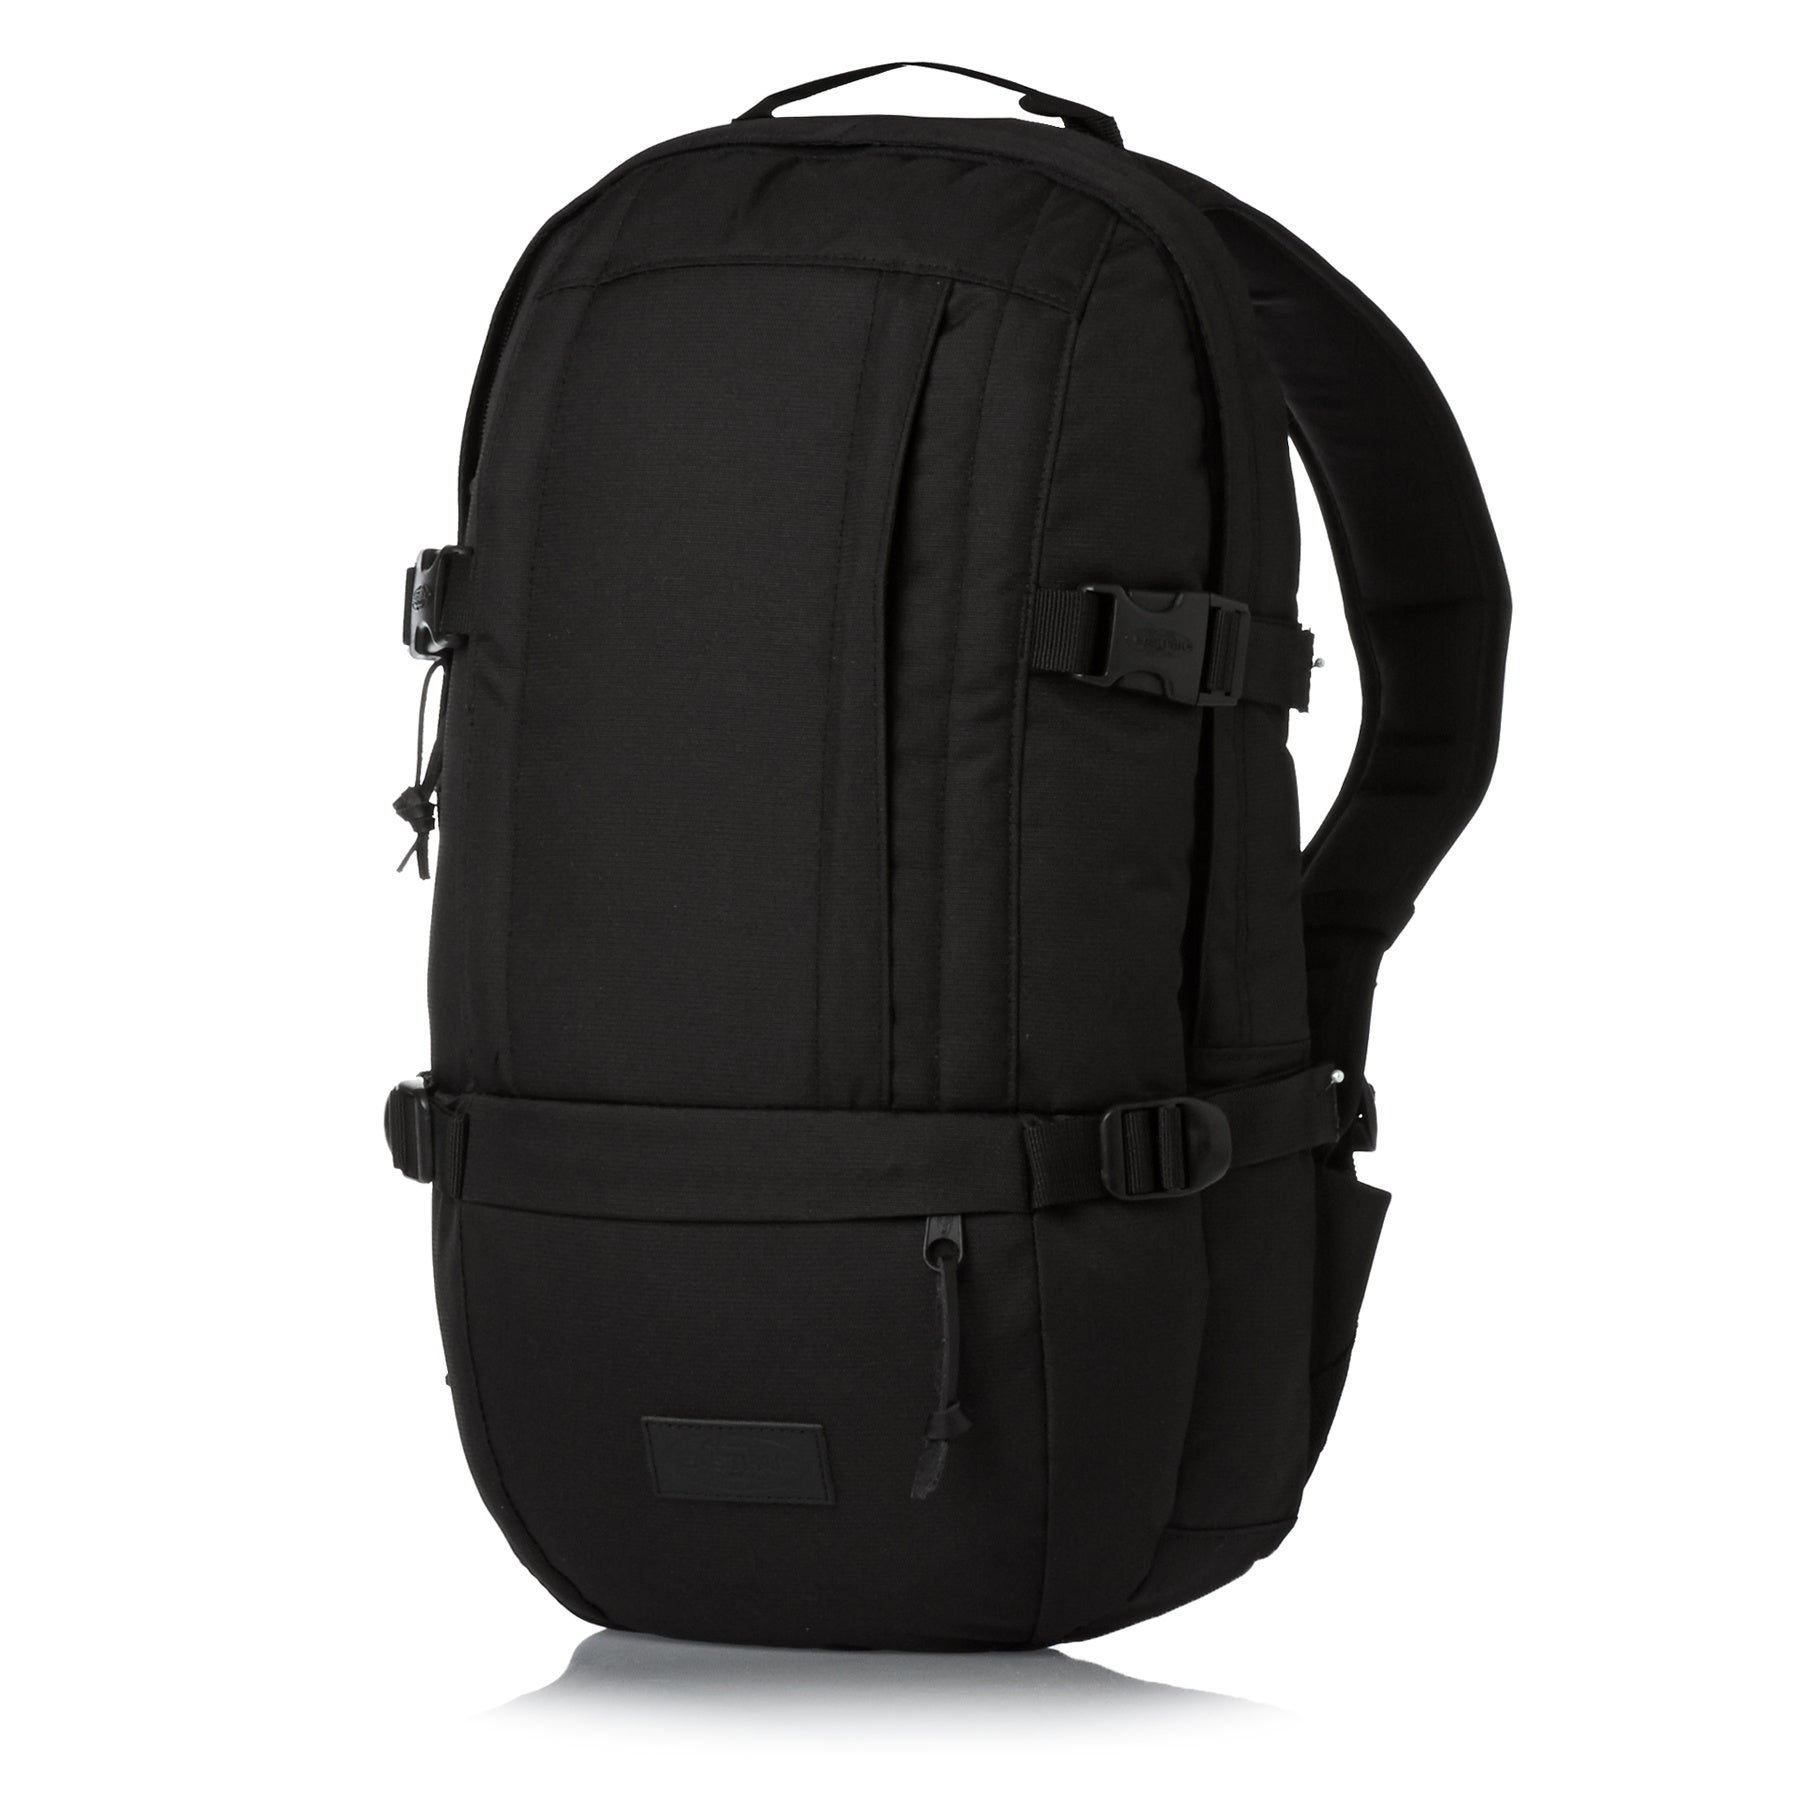 Sac à Dos pour Ordinateur Portable Eastpak Floid - Black2